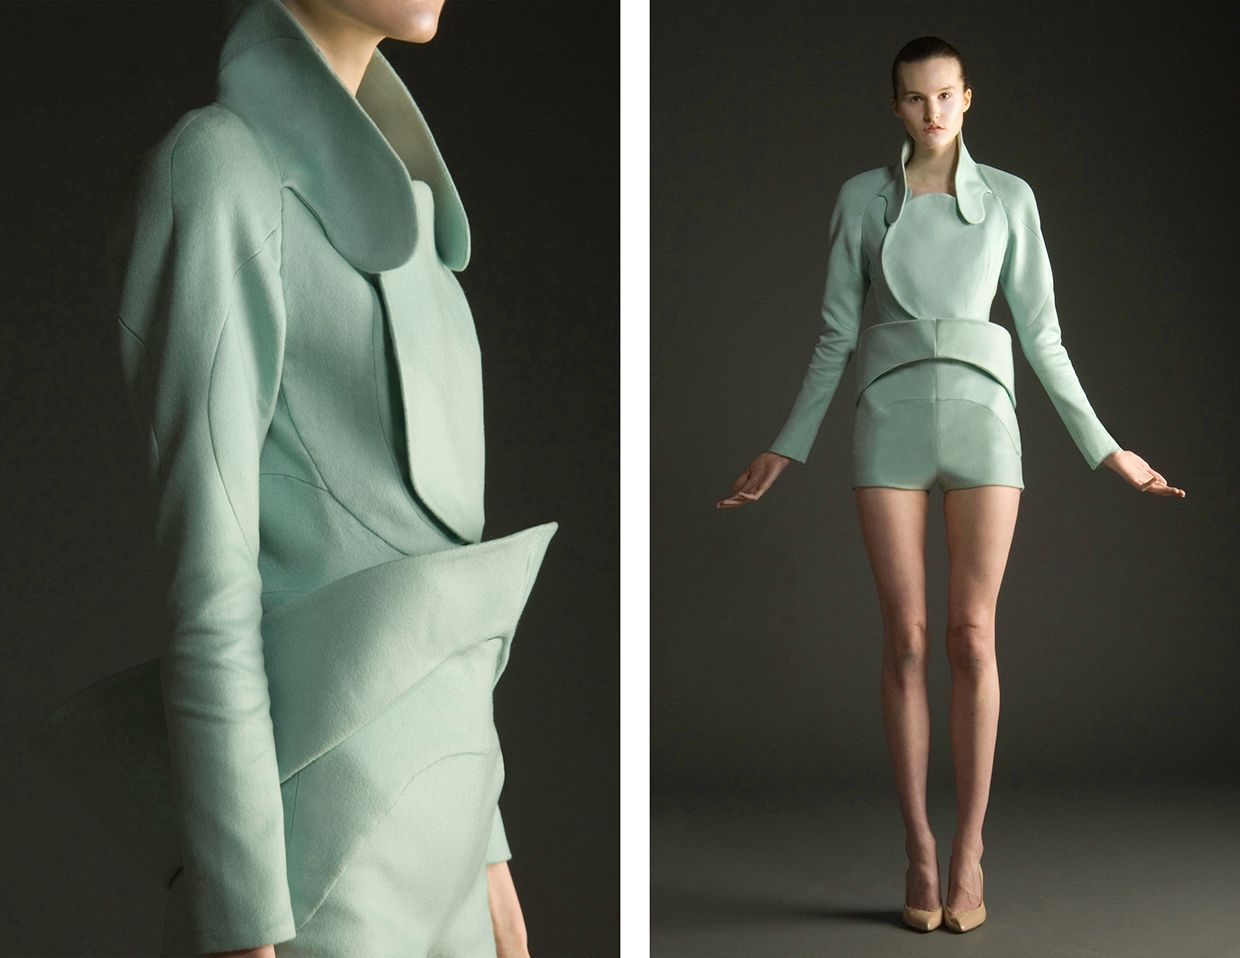 Opalescent Thesis Collection On Risd Portfolios Fashion Design Sculptural Fashion